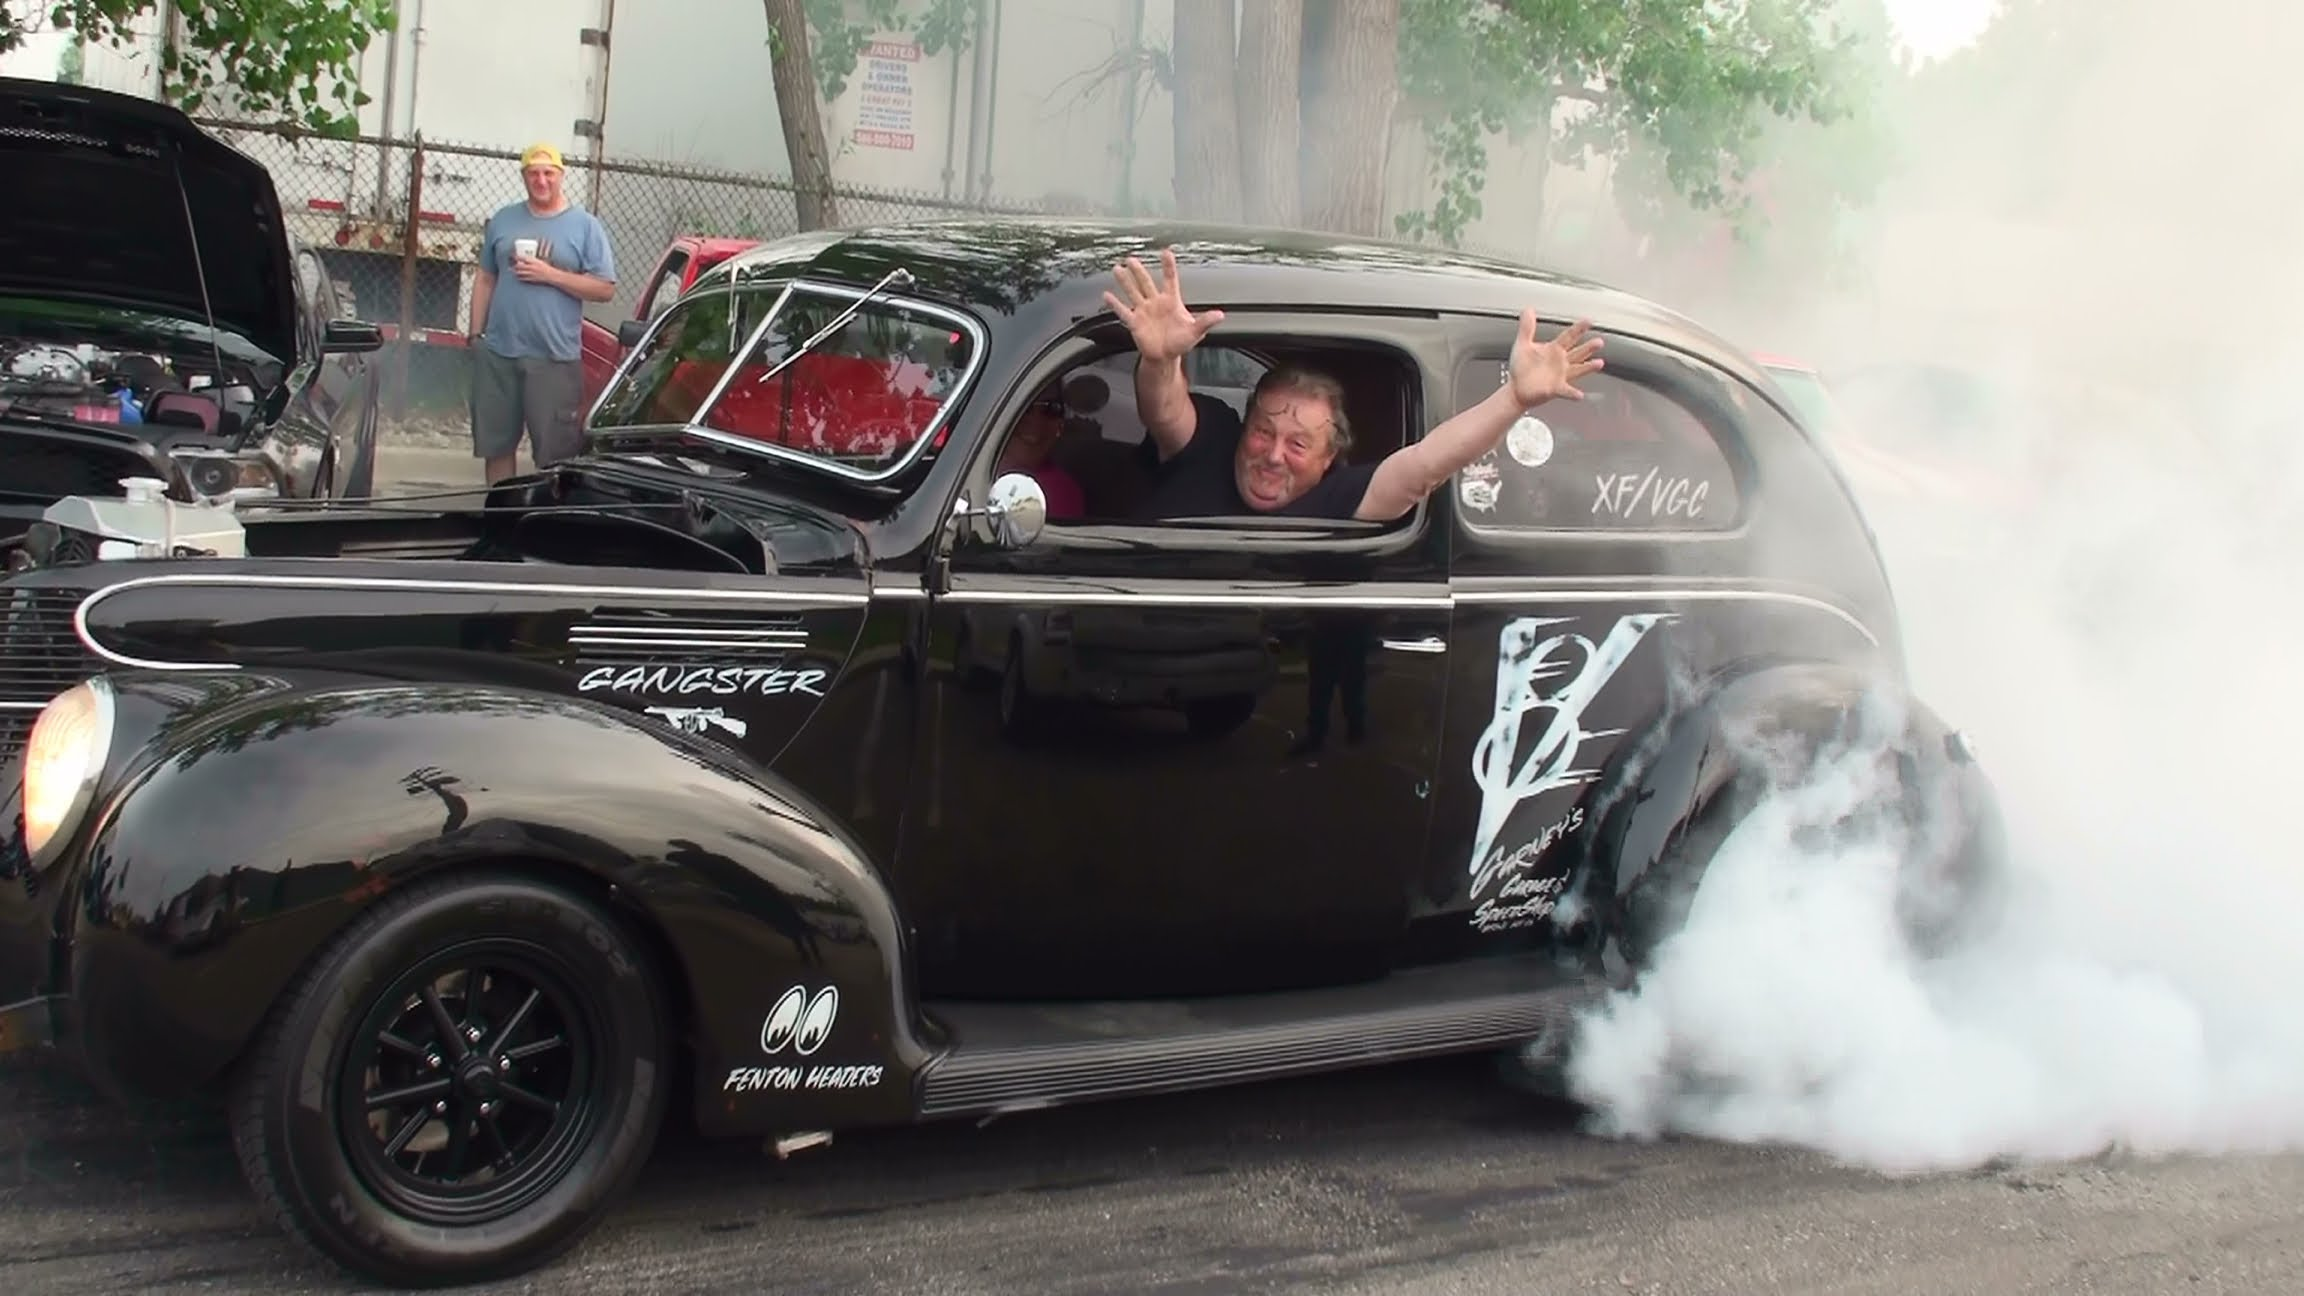 Black Gangster V8 Hot Rod Is The Burnout King In This Tournament